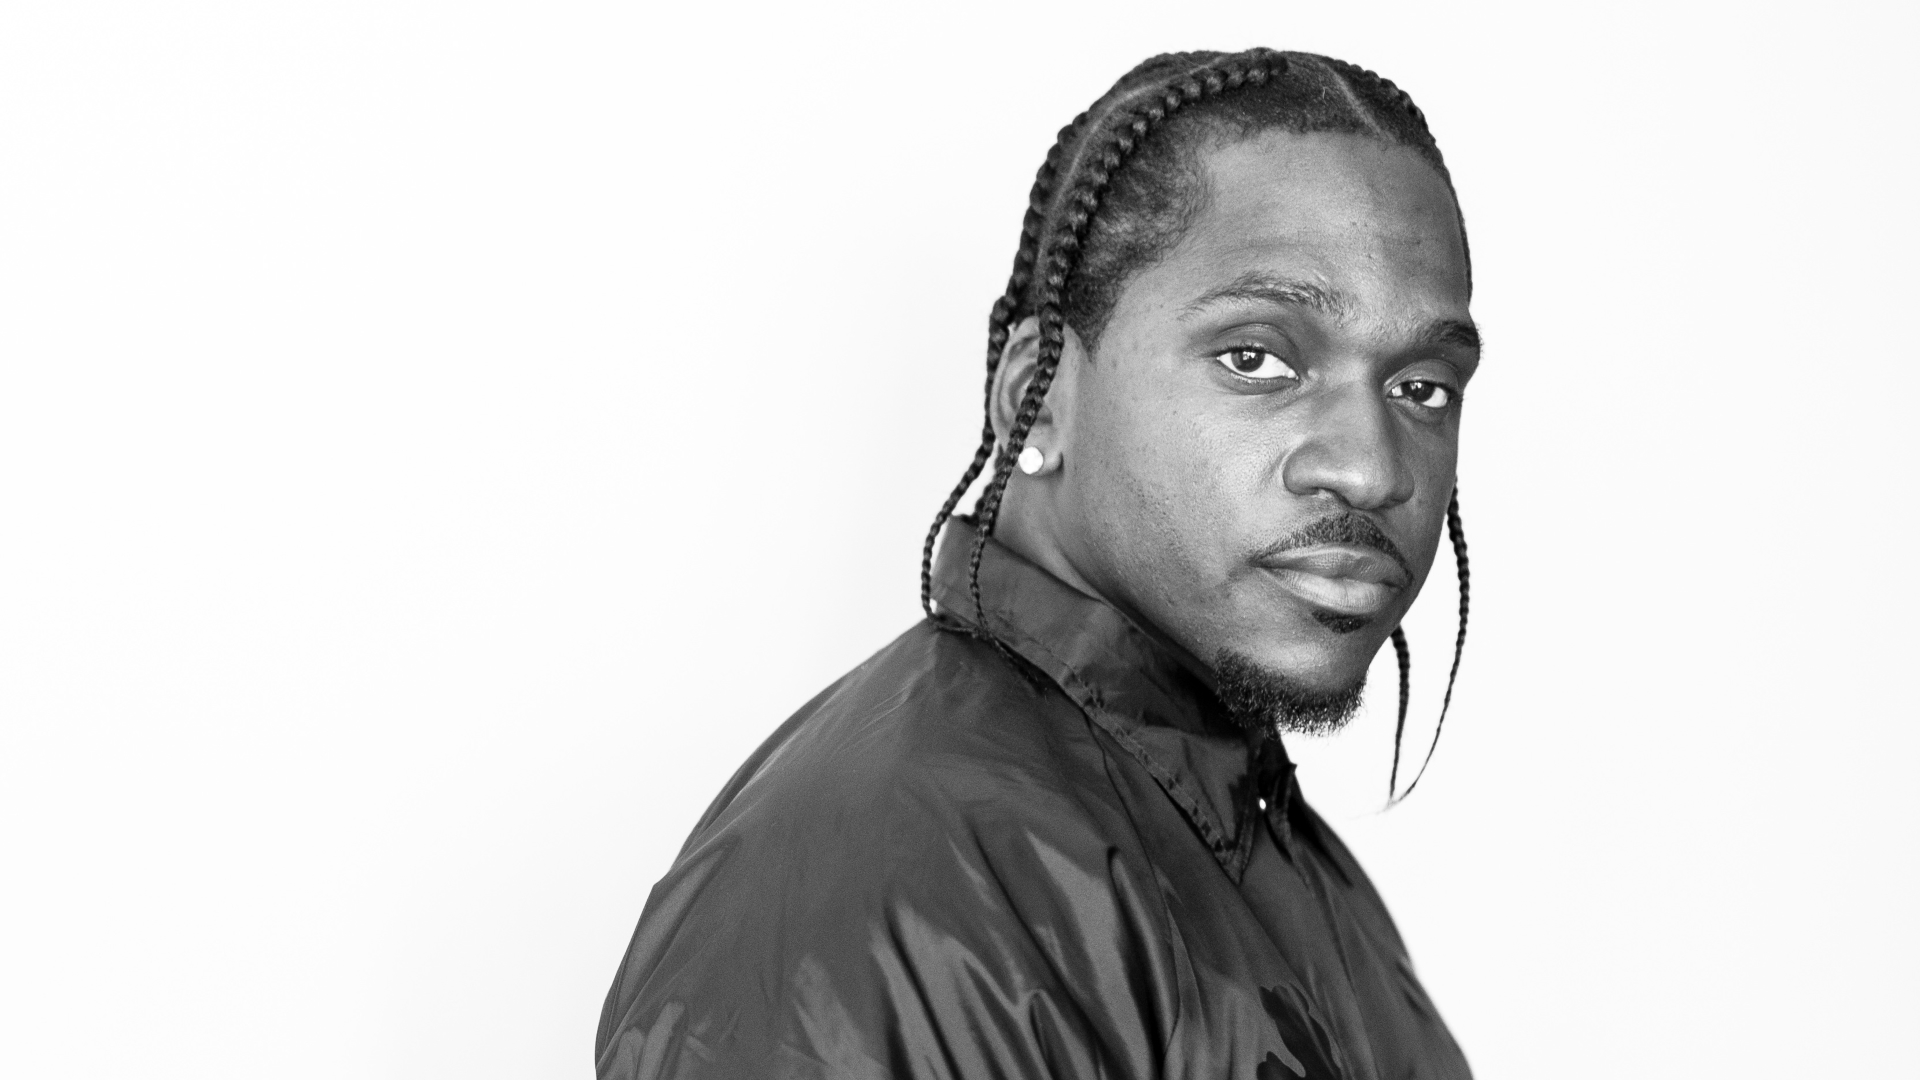 pusha t drake beef over